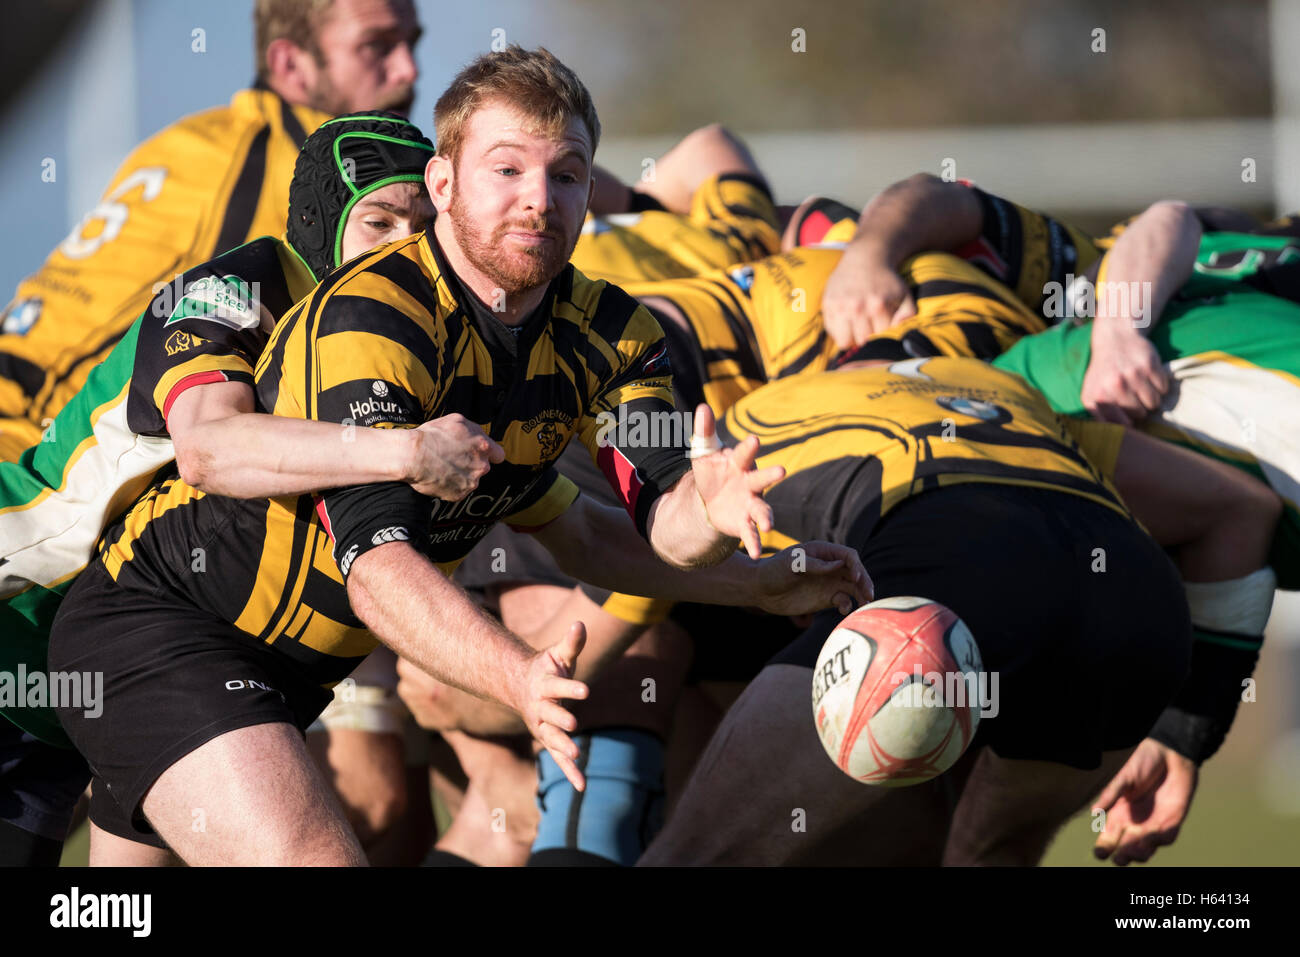 North Dorset RFC 2nd XV vs Bournemouth III XV - Dorset, England. Bournemouth scrum half in action. - Stock Image